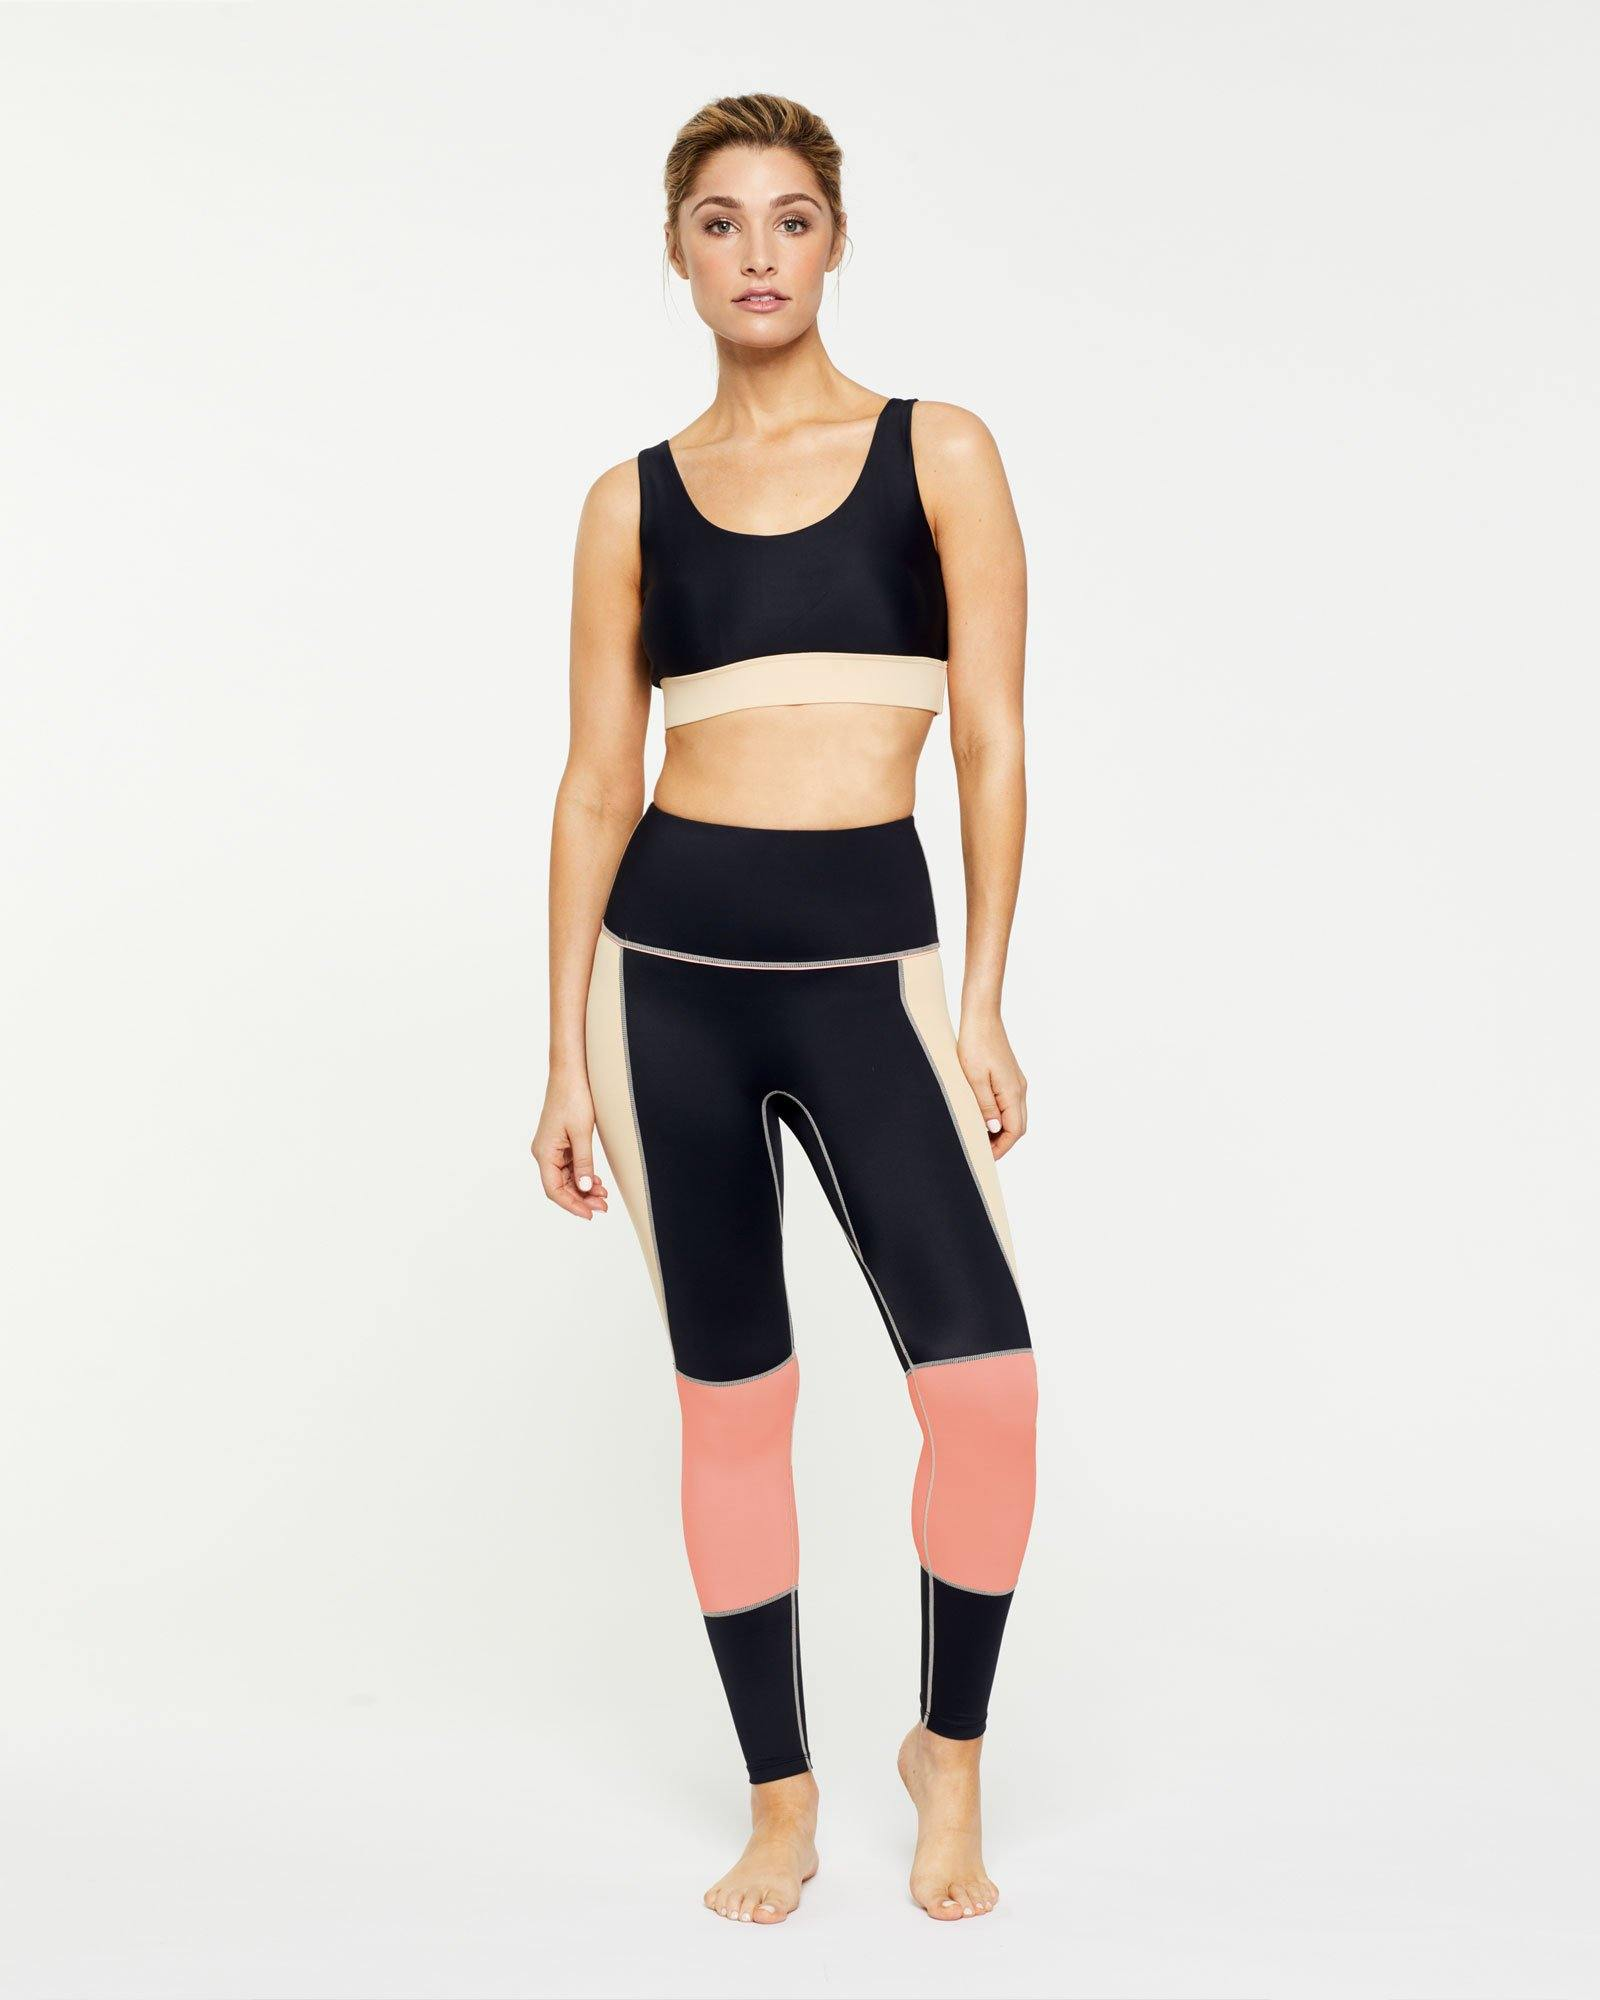 WARRIOR GRACILIS 7/8 HIGH WAISTED LEGGING BLACK WITH CONTRAST PANELS WORN WITH PECTORALIS BRA TOP, FRONT VIEW